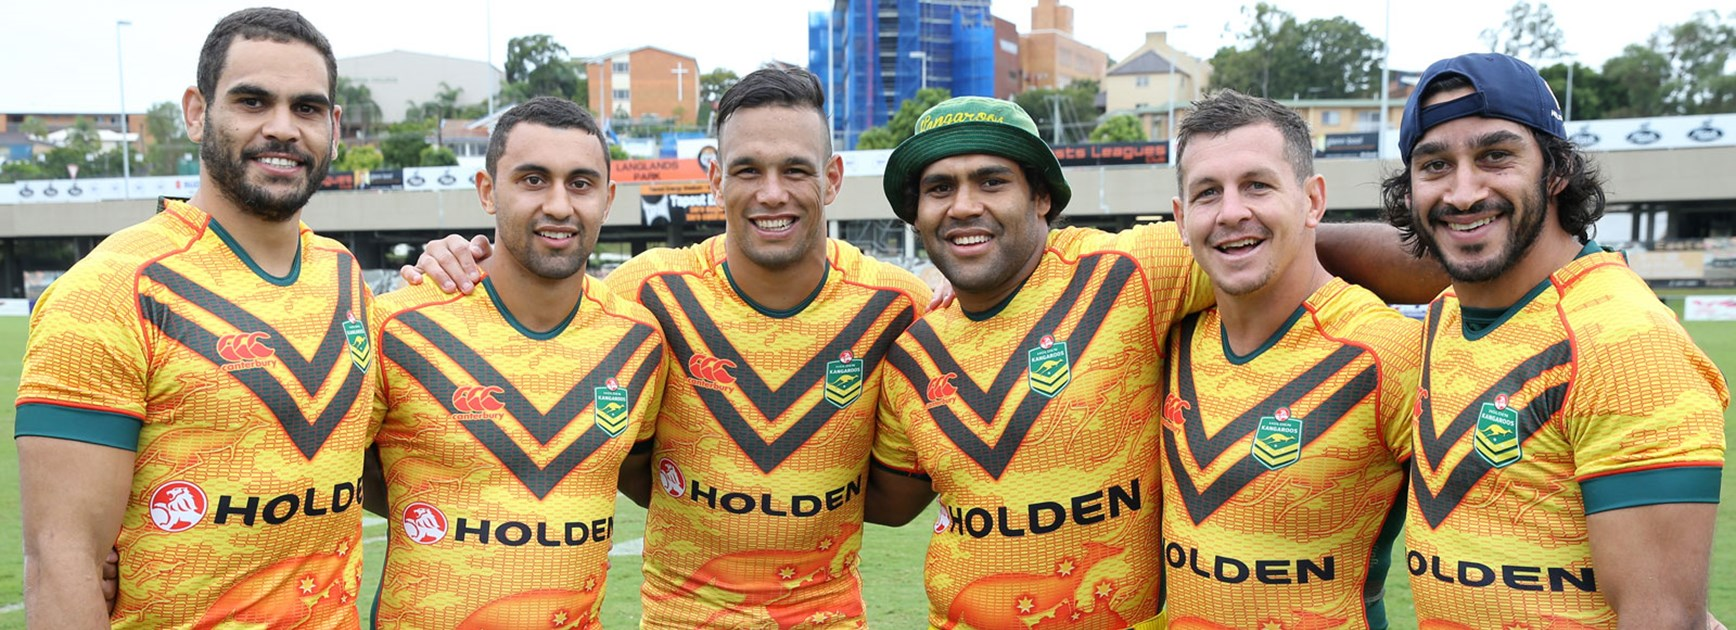 Australia's record Indigenous representation of Greg Inglis, Alex Johnston, Will Chambers, Sam Thaiday, Greg Bird and Johnathan Thurston.